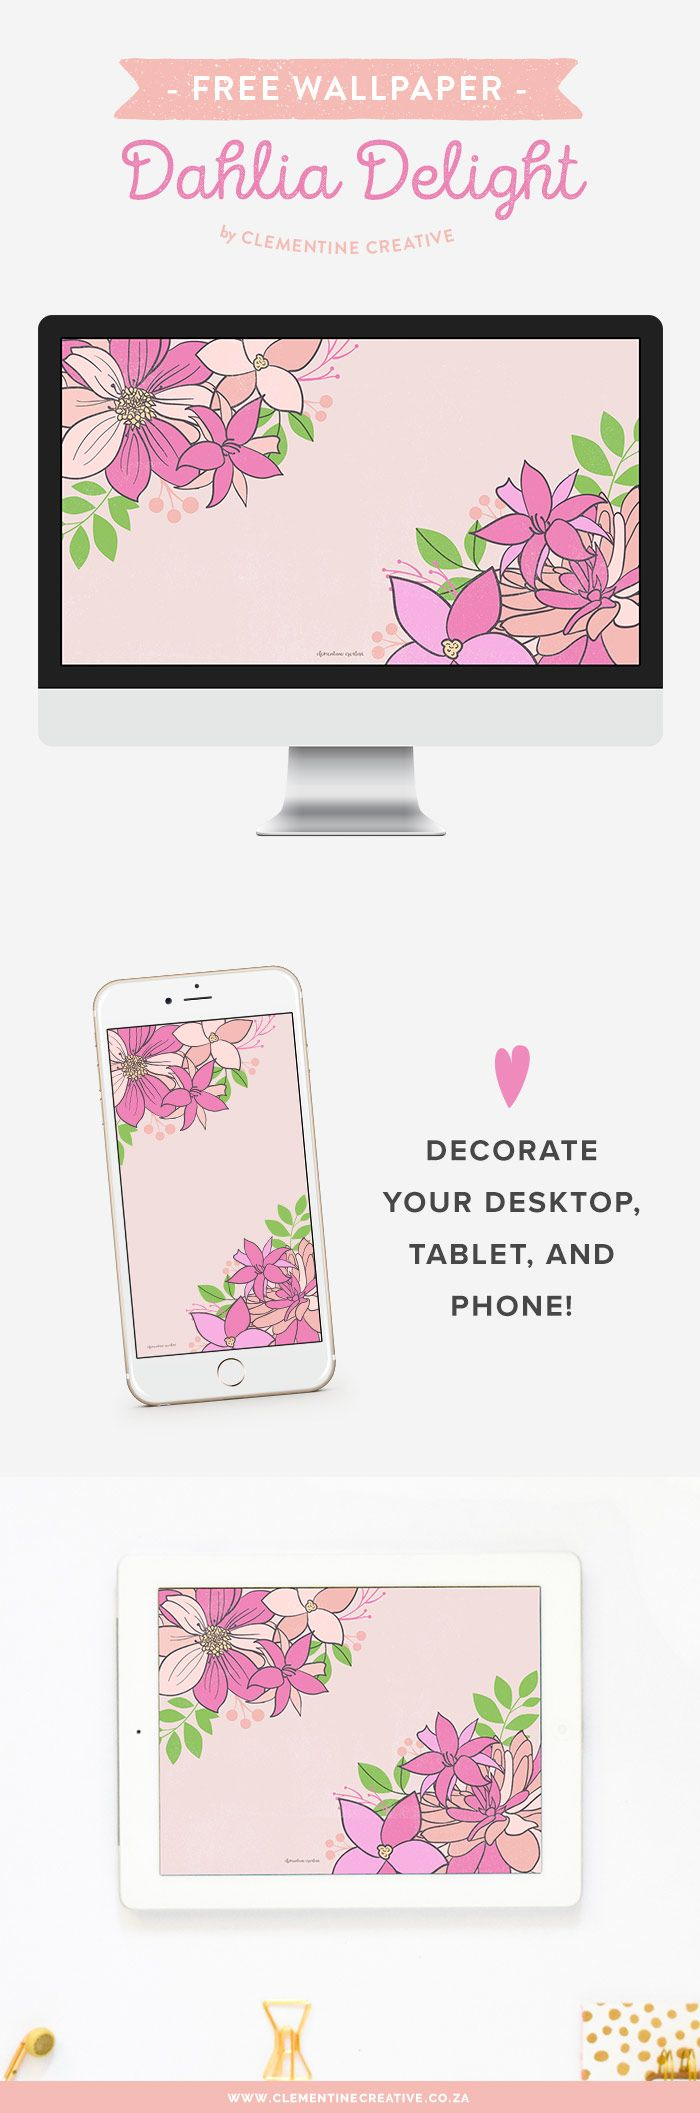 Free wallpapers for your phone desktop and tablet free wallpaper dahlia delight in peach and pink voltagebd Images